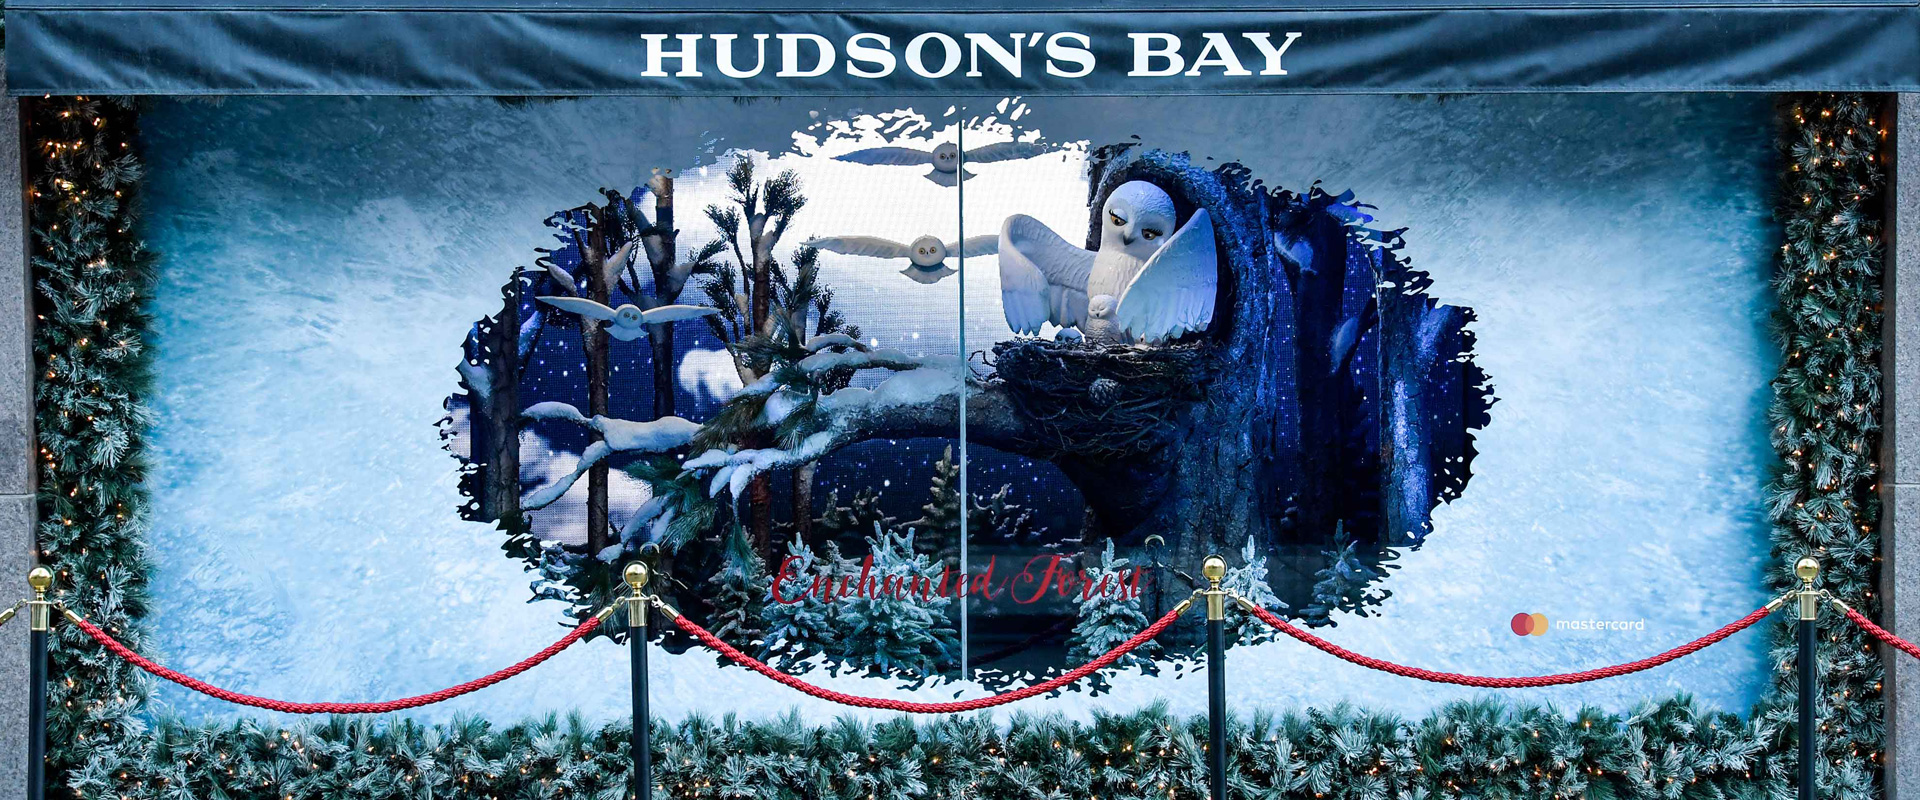 Hudson's Bay Iconic Christmas Window Display Designs - Central Station